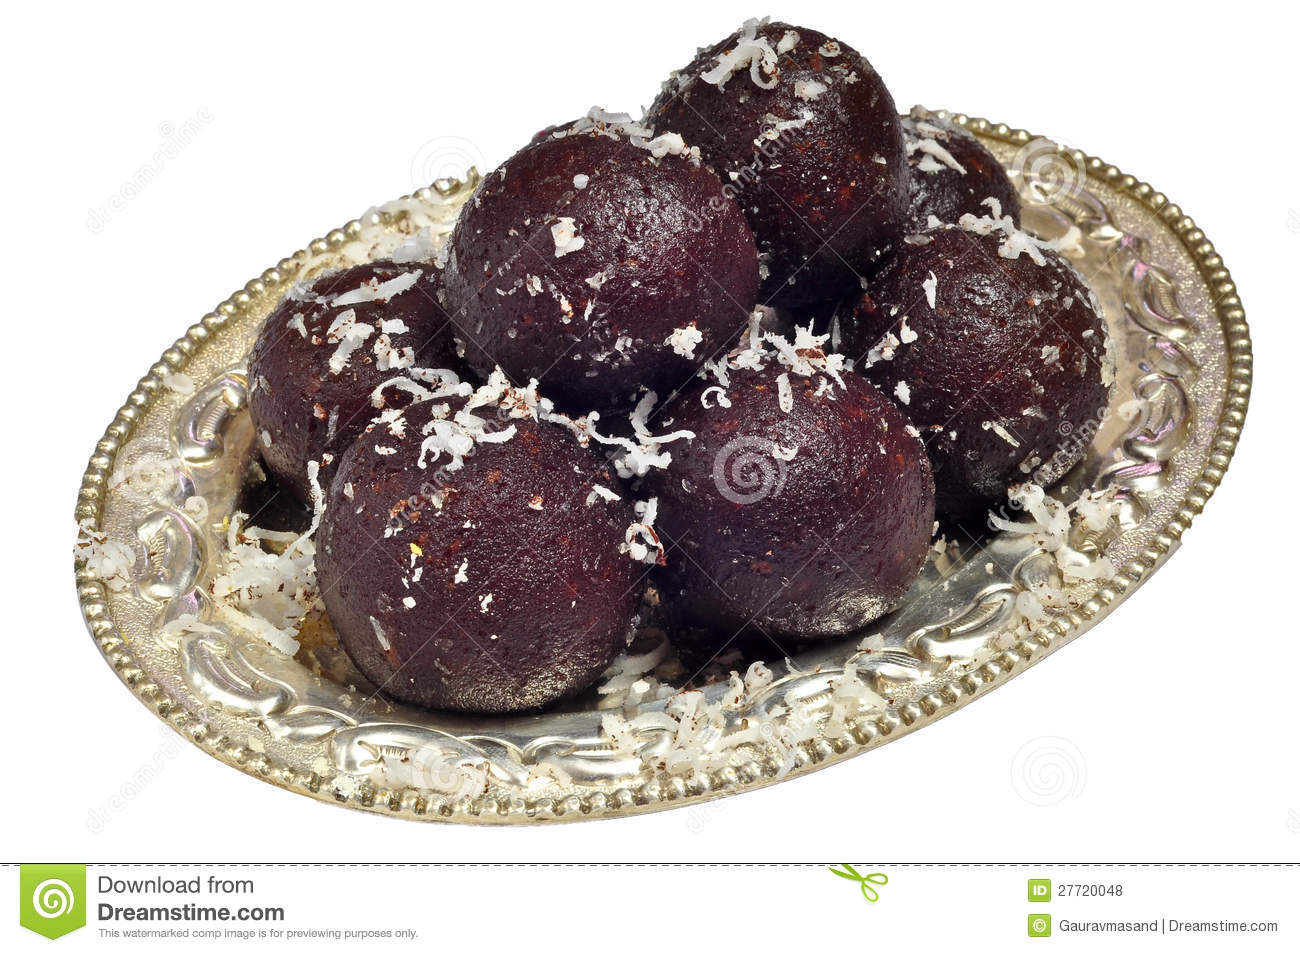 Indian Sweets Gulab Jamun Stock Photos, Images, & Pictures.